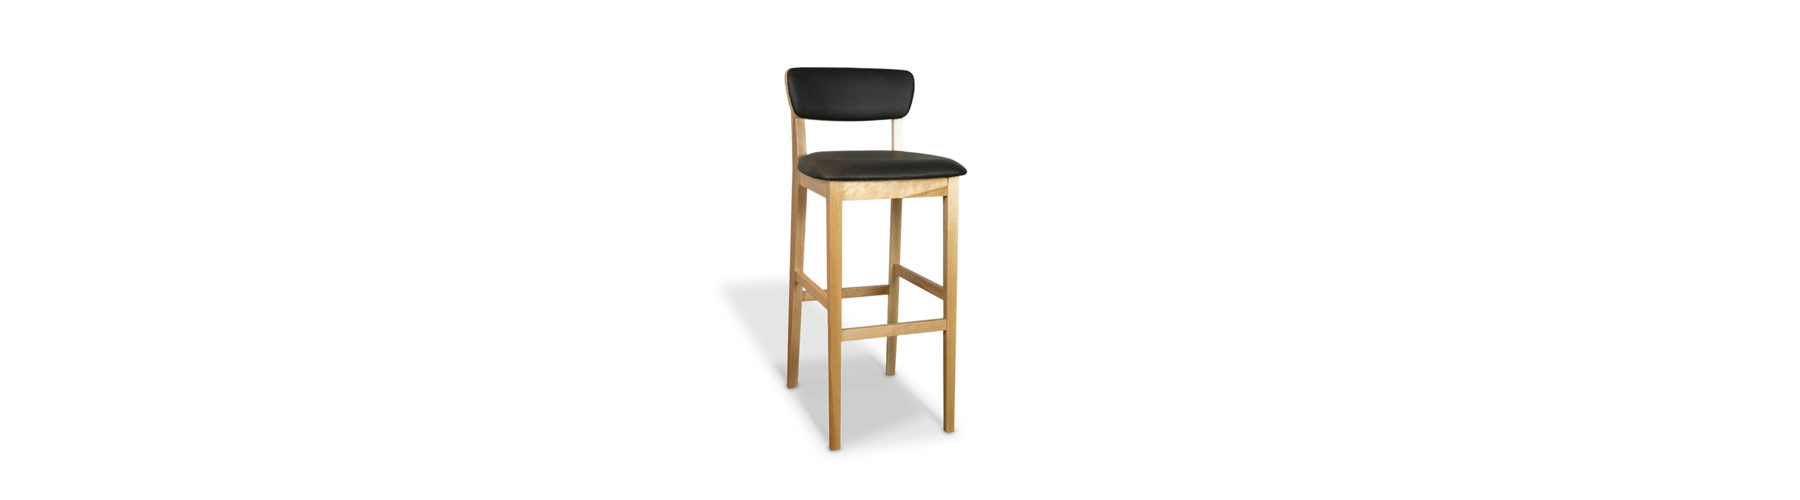 Molly - Tabouret William